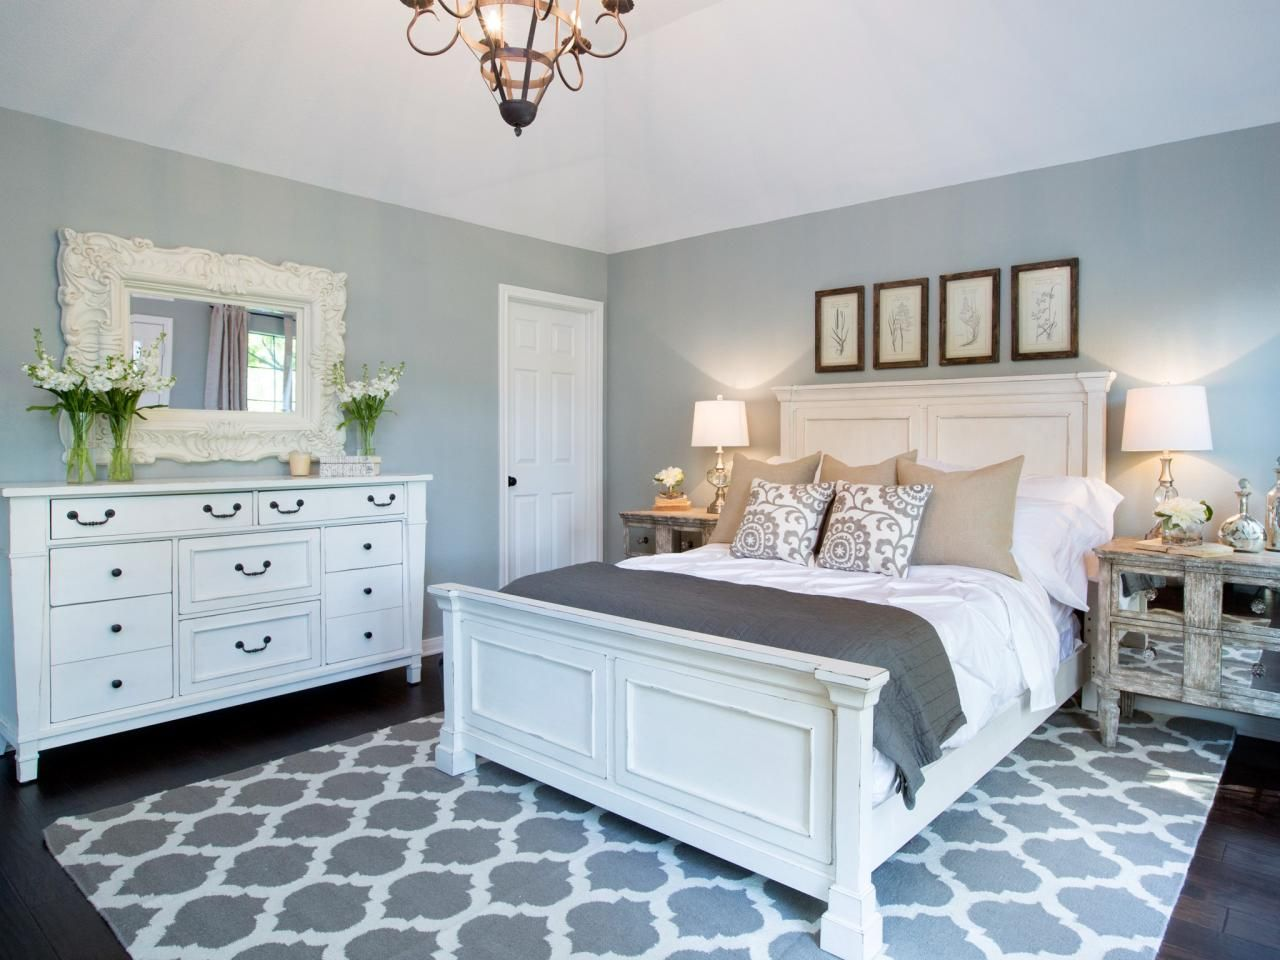 Bedroom colors grey and white - I Have Black Bedroom Furniture With Silver Accent Handles I Ordered The Same Rug Silver Lamps W White Shades W Silver Ribbings Around The Shades